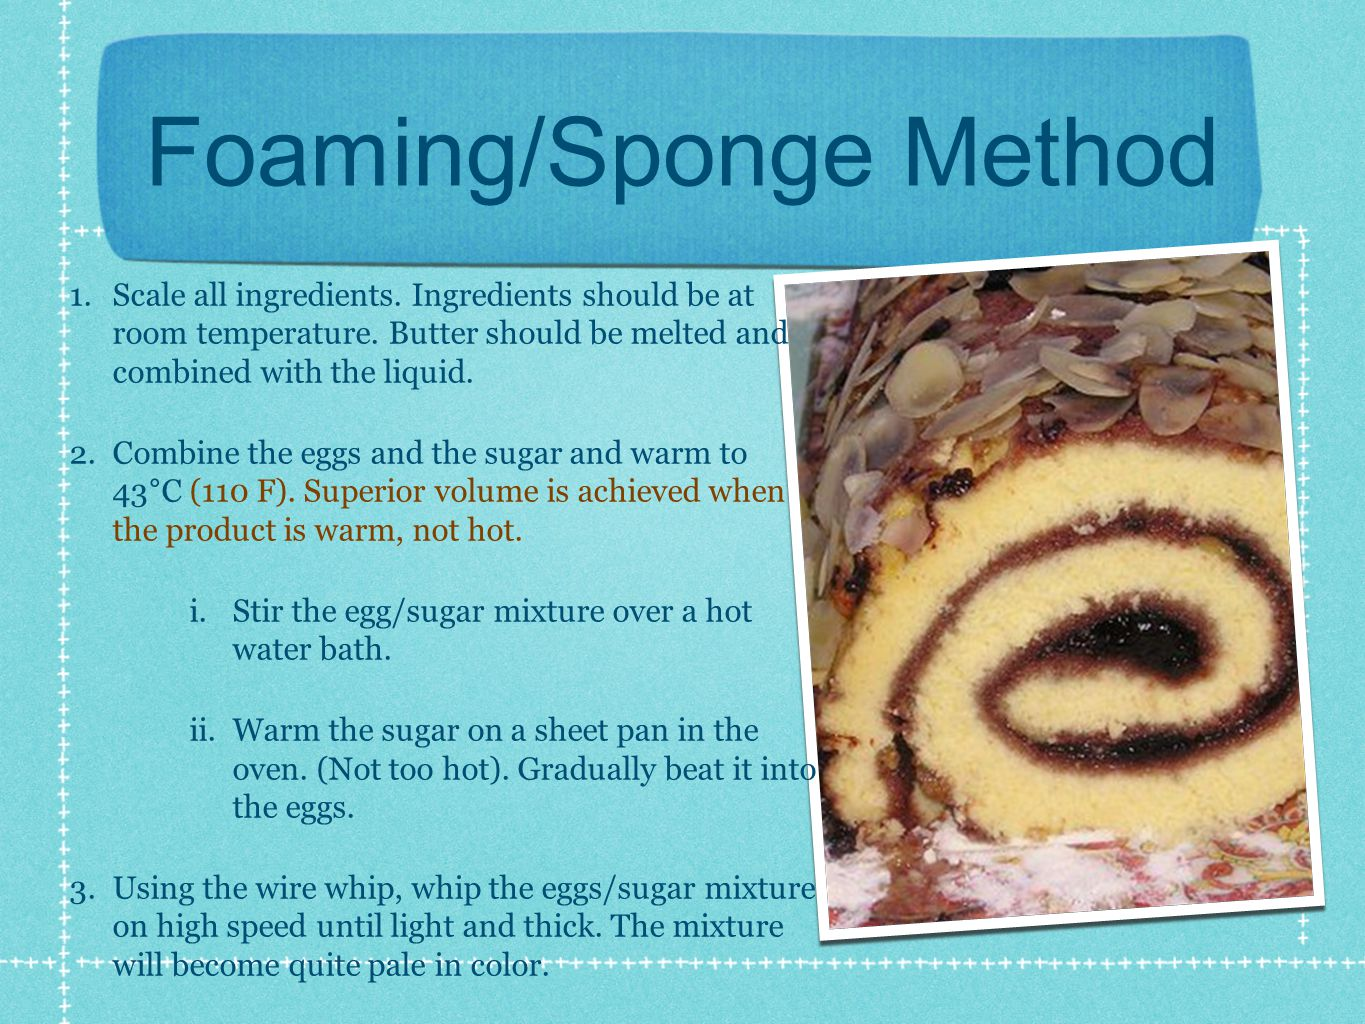 Foaming/Sponge Method 1. Scale all ingredients. Ingredients should be at room temperature.